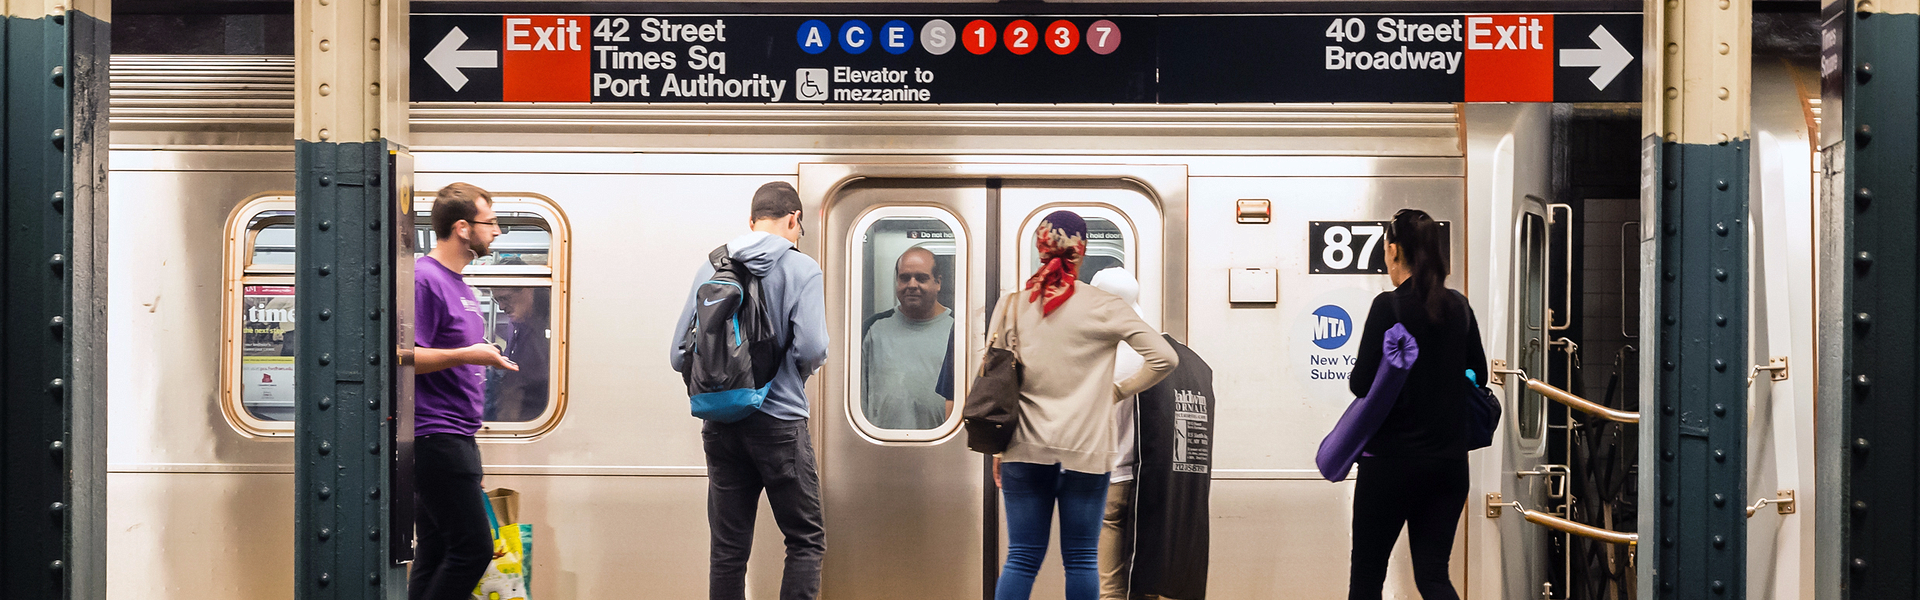 http://livingfreenyc.com/wp-content/uploads/2016/06/NYC-Subway.jpg